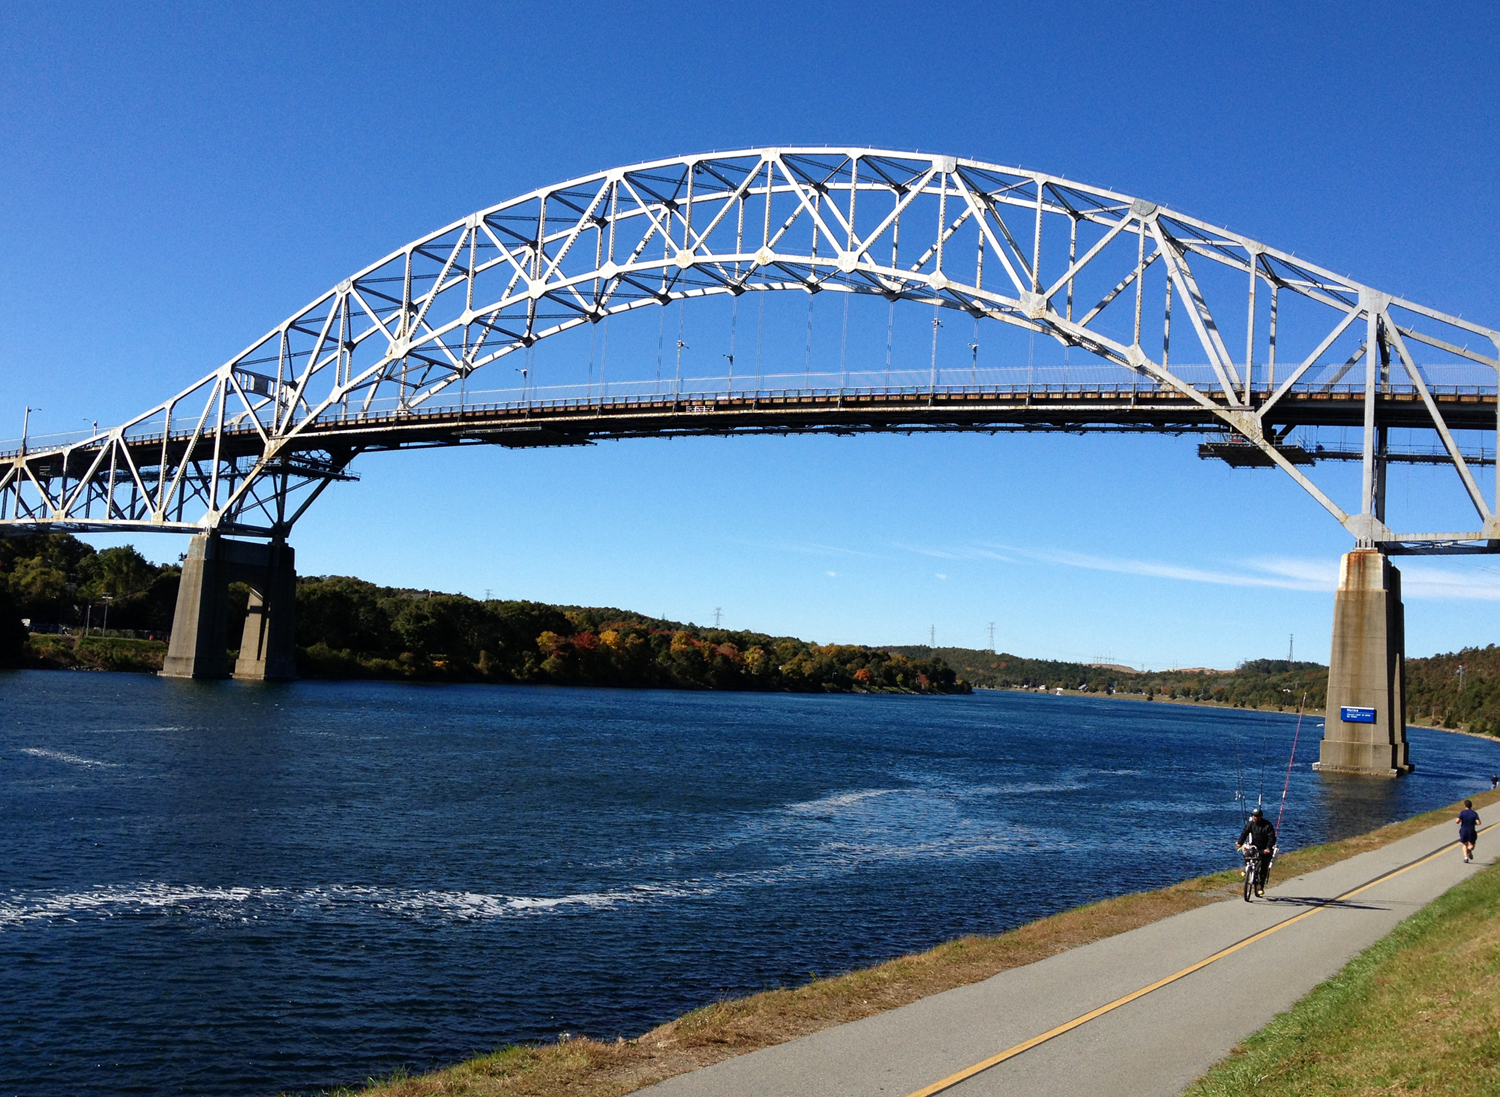 The Sagamore Bridge - Cape Cod Canal